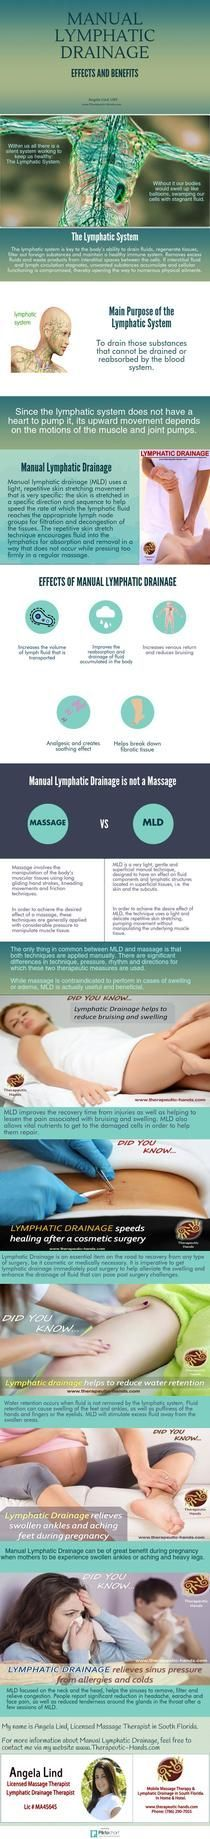 Manual Lymphatic Drainage | Piktochart Infographic Editor